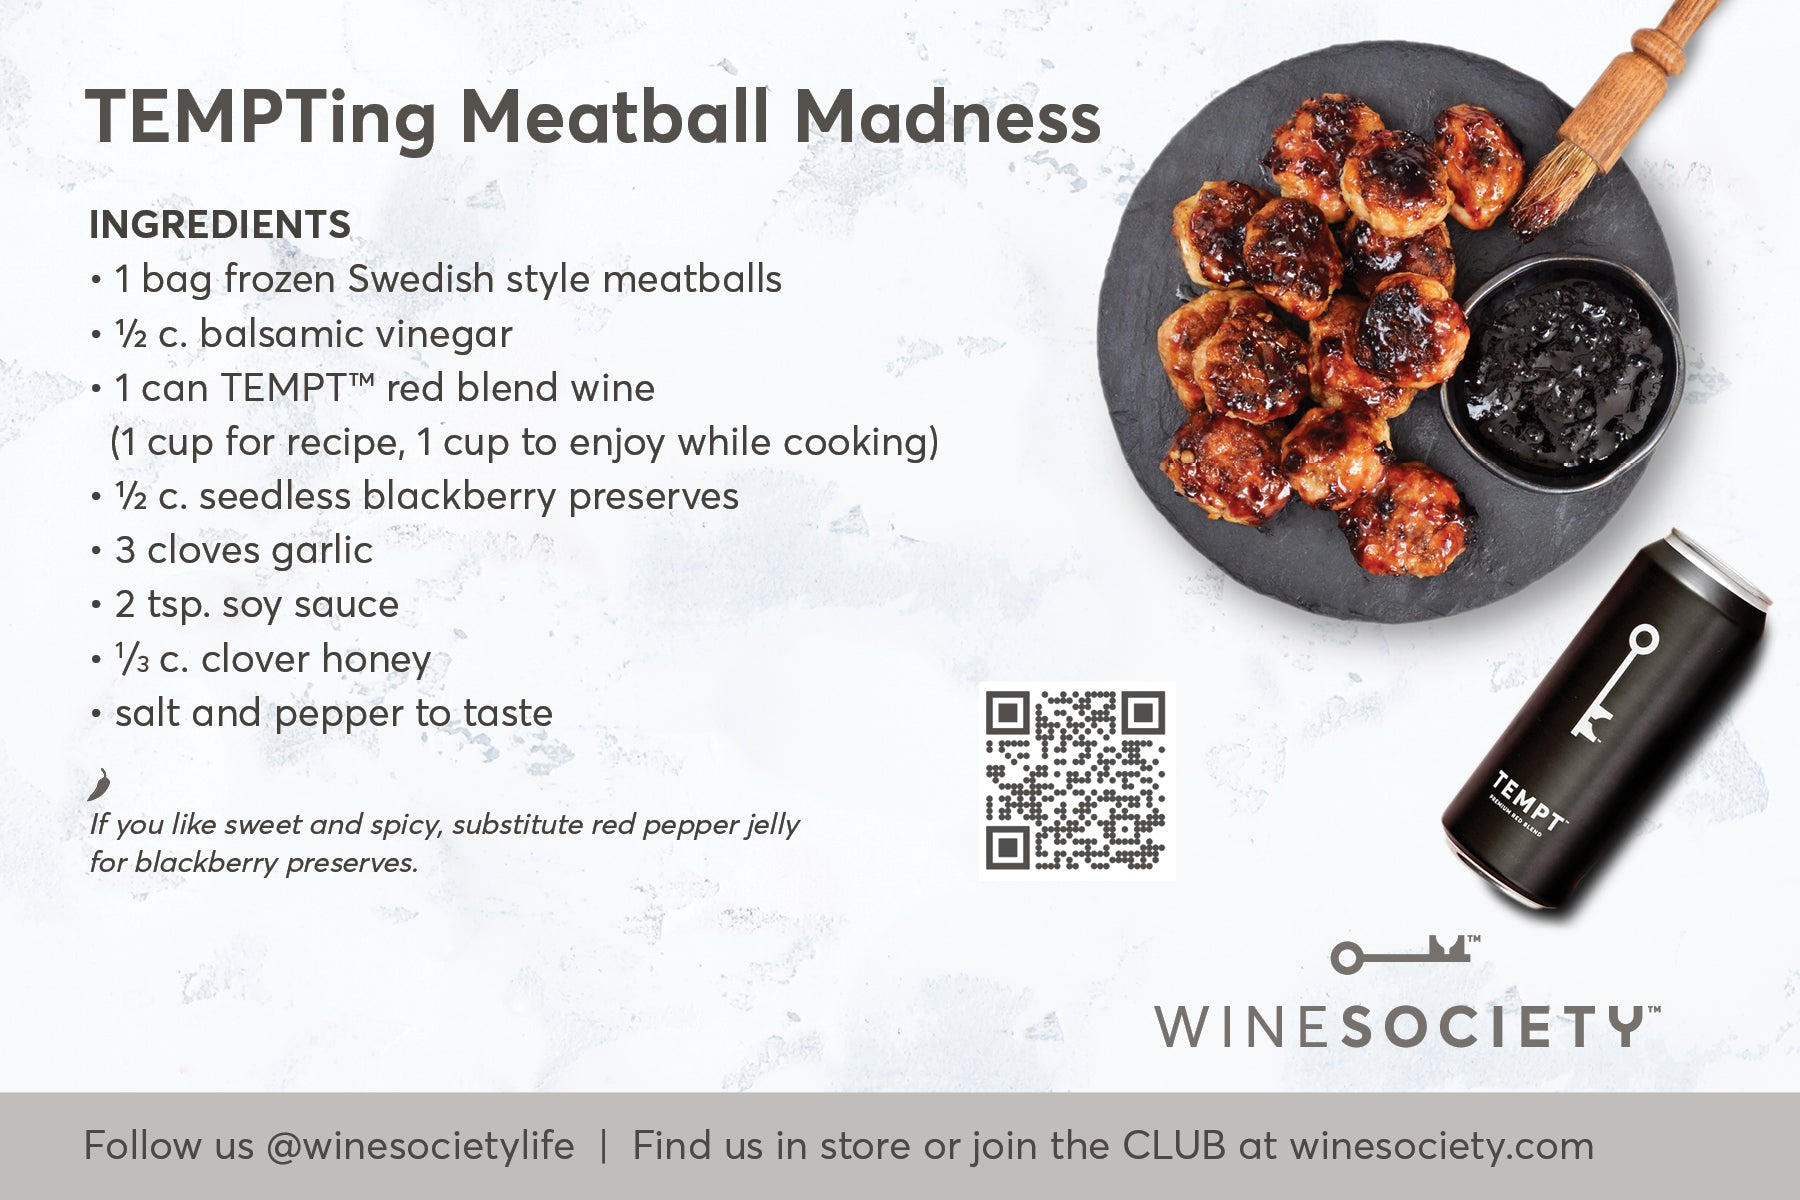 WineSociety 4x6 Recipe Card TEMPTing Meatball Madness